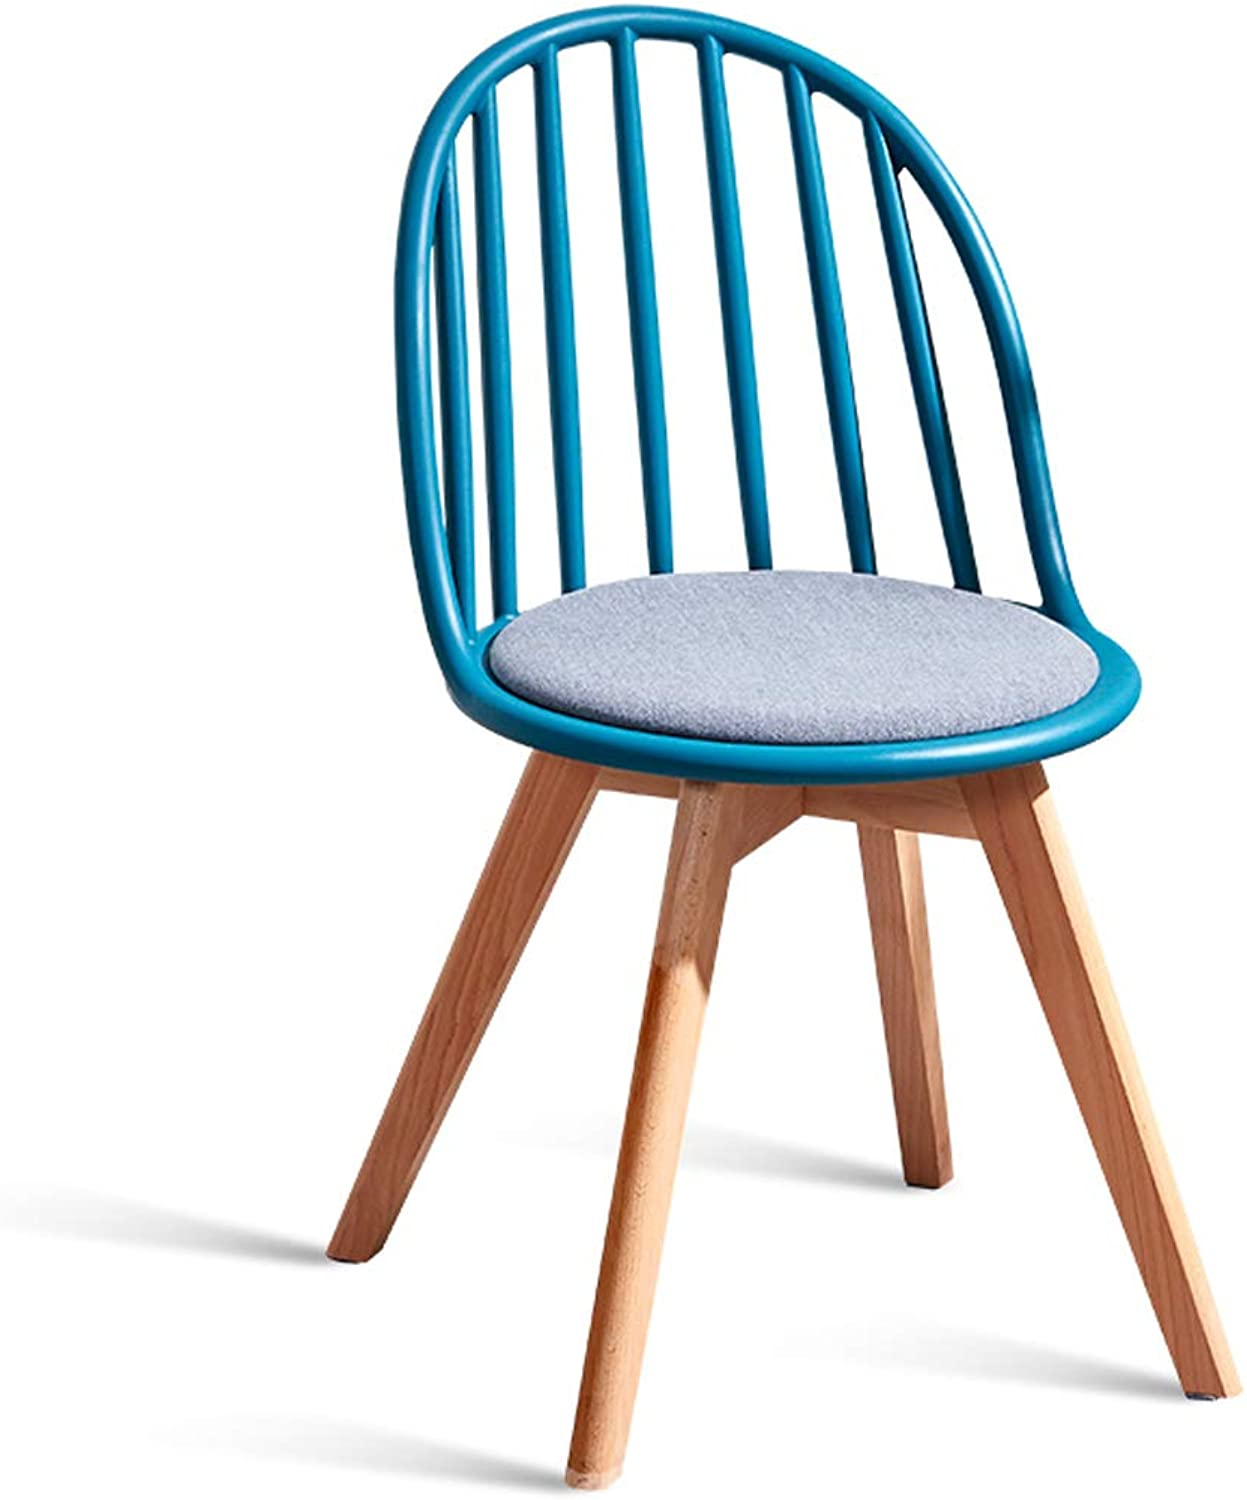 LRW Nordic Dining Chair, Back Chair, Dining Room, Modern Leisure Chair, Stool, bluee